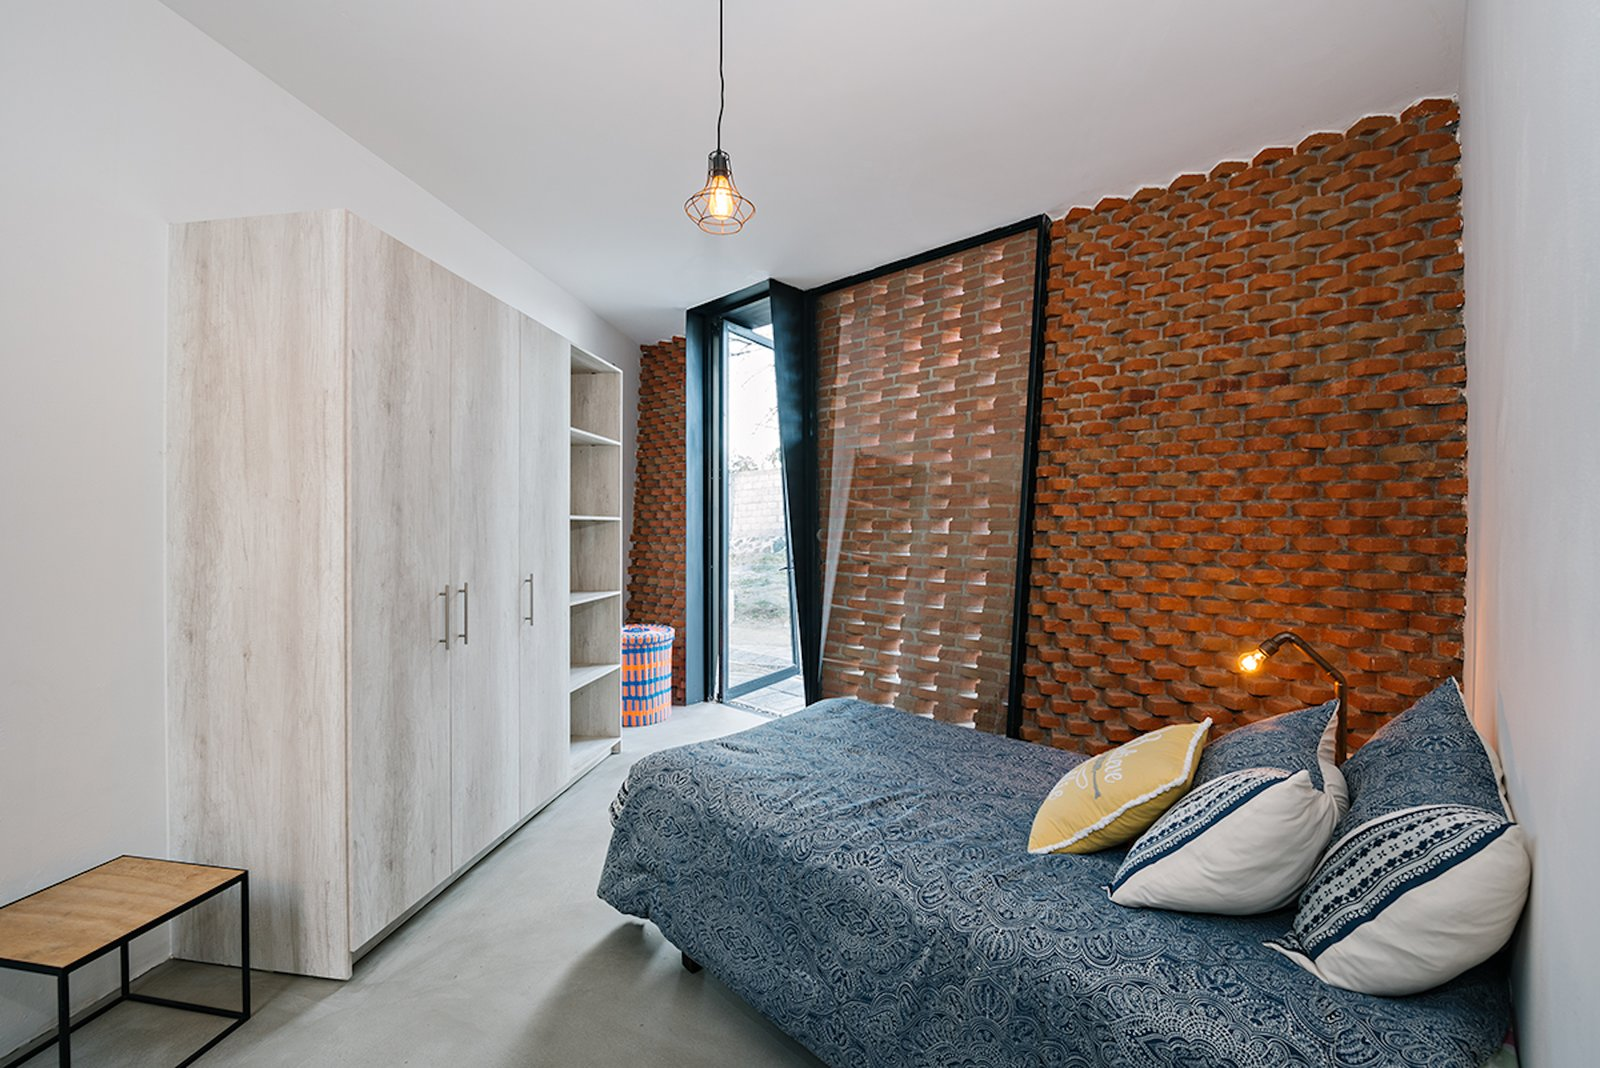 Bedroom, Pendant Lighting, Concrete Floor, and Bed A second bedroom, along with a bathroom and laundry room, are set around an interior patio that is connected to the master bedroom.    Photo 9 of 14 in Extruded Red Bricks Create a Gorgeous, Geometric Mexican Home